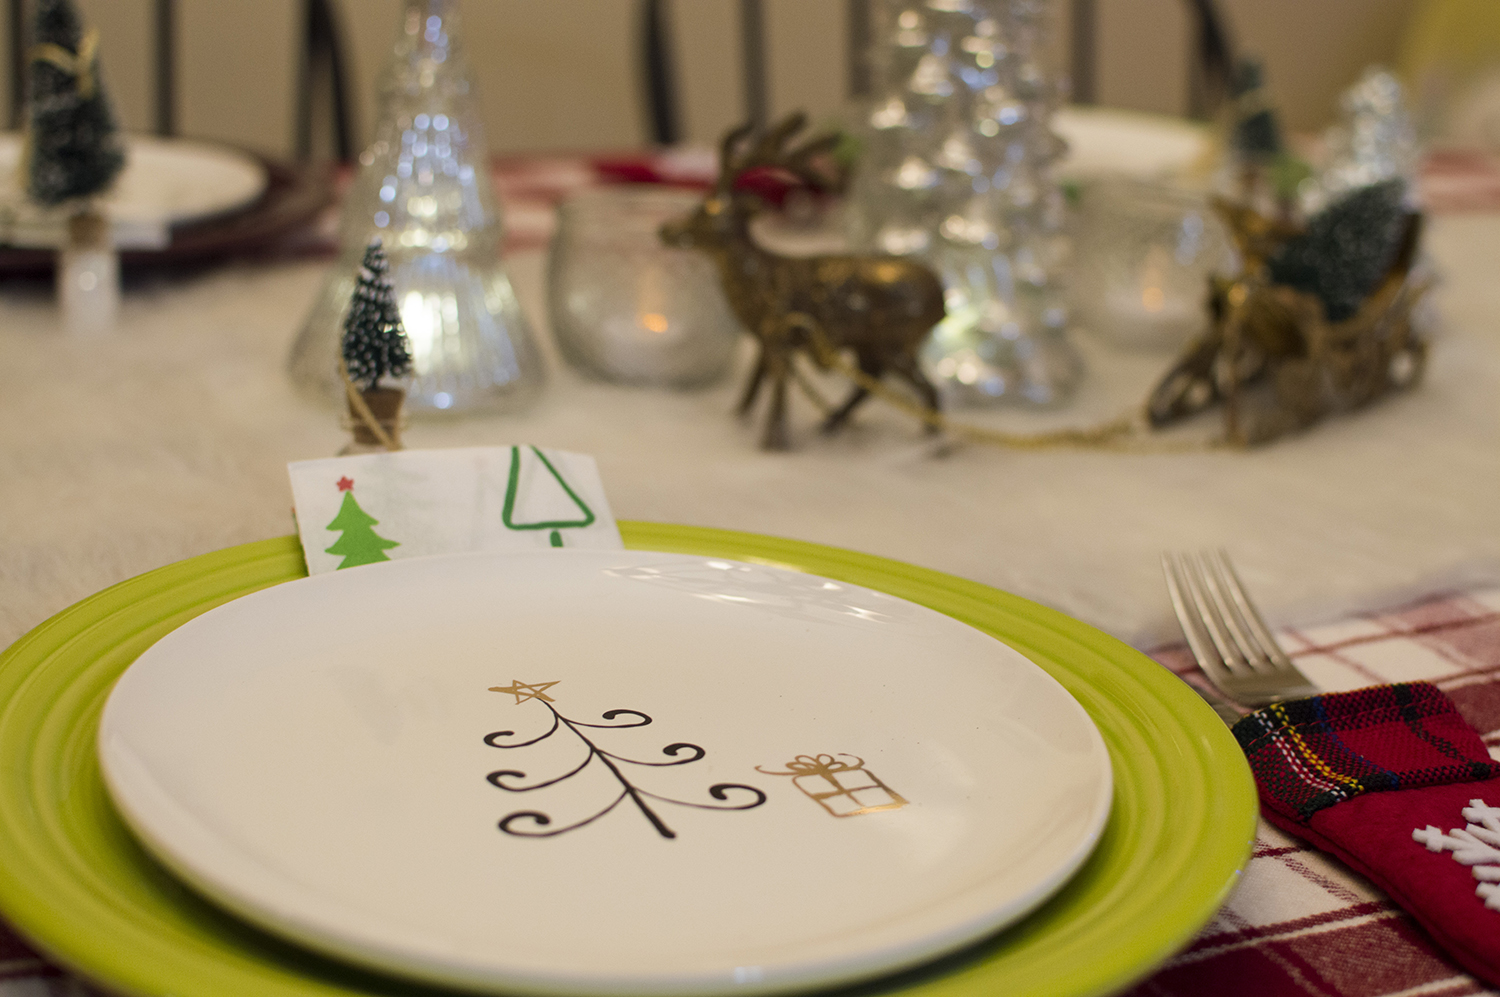 Holiday giveaway week win a 50 macys gift card from macys south festive salad or dessert plates make a fantastic hostess gift and the low price on this merry bright set is unbeatable shopping for yourself solutioingenieria Images